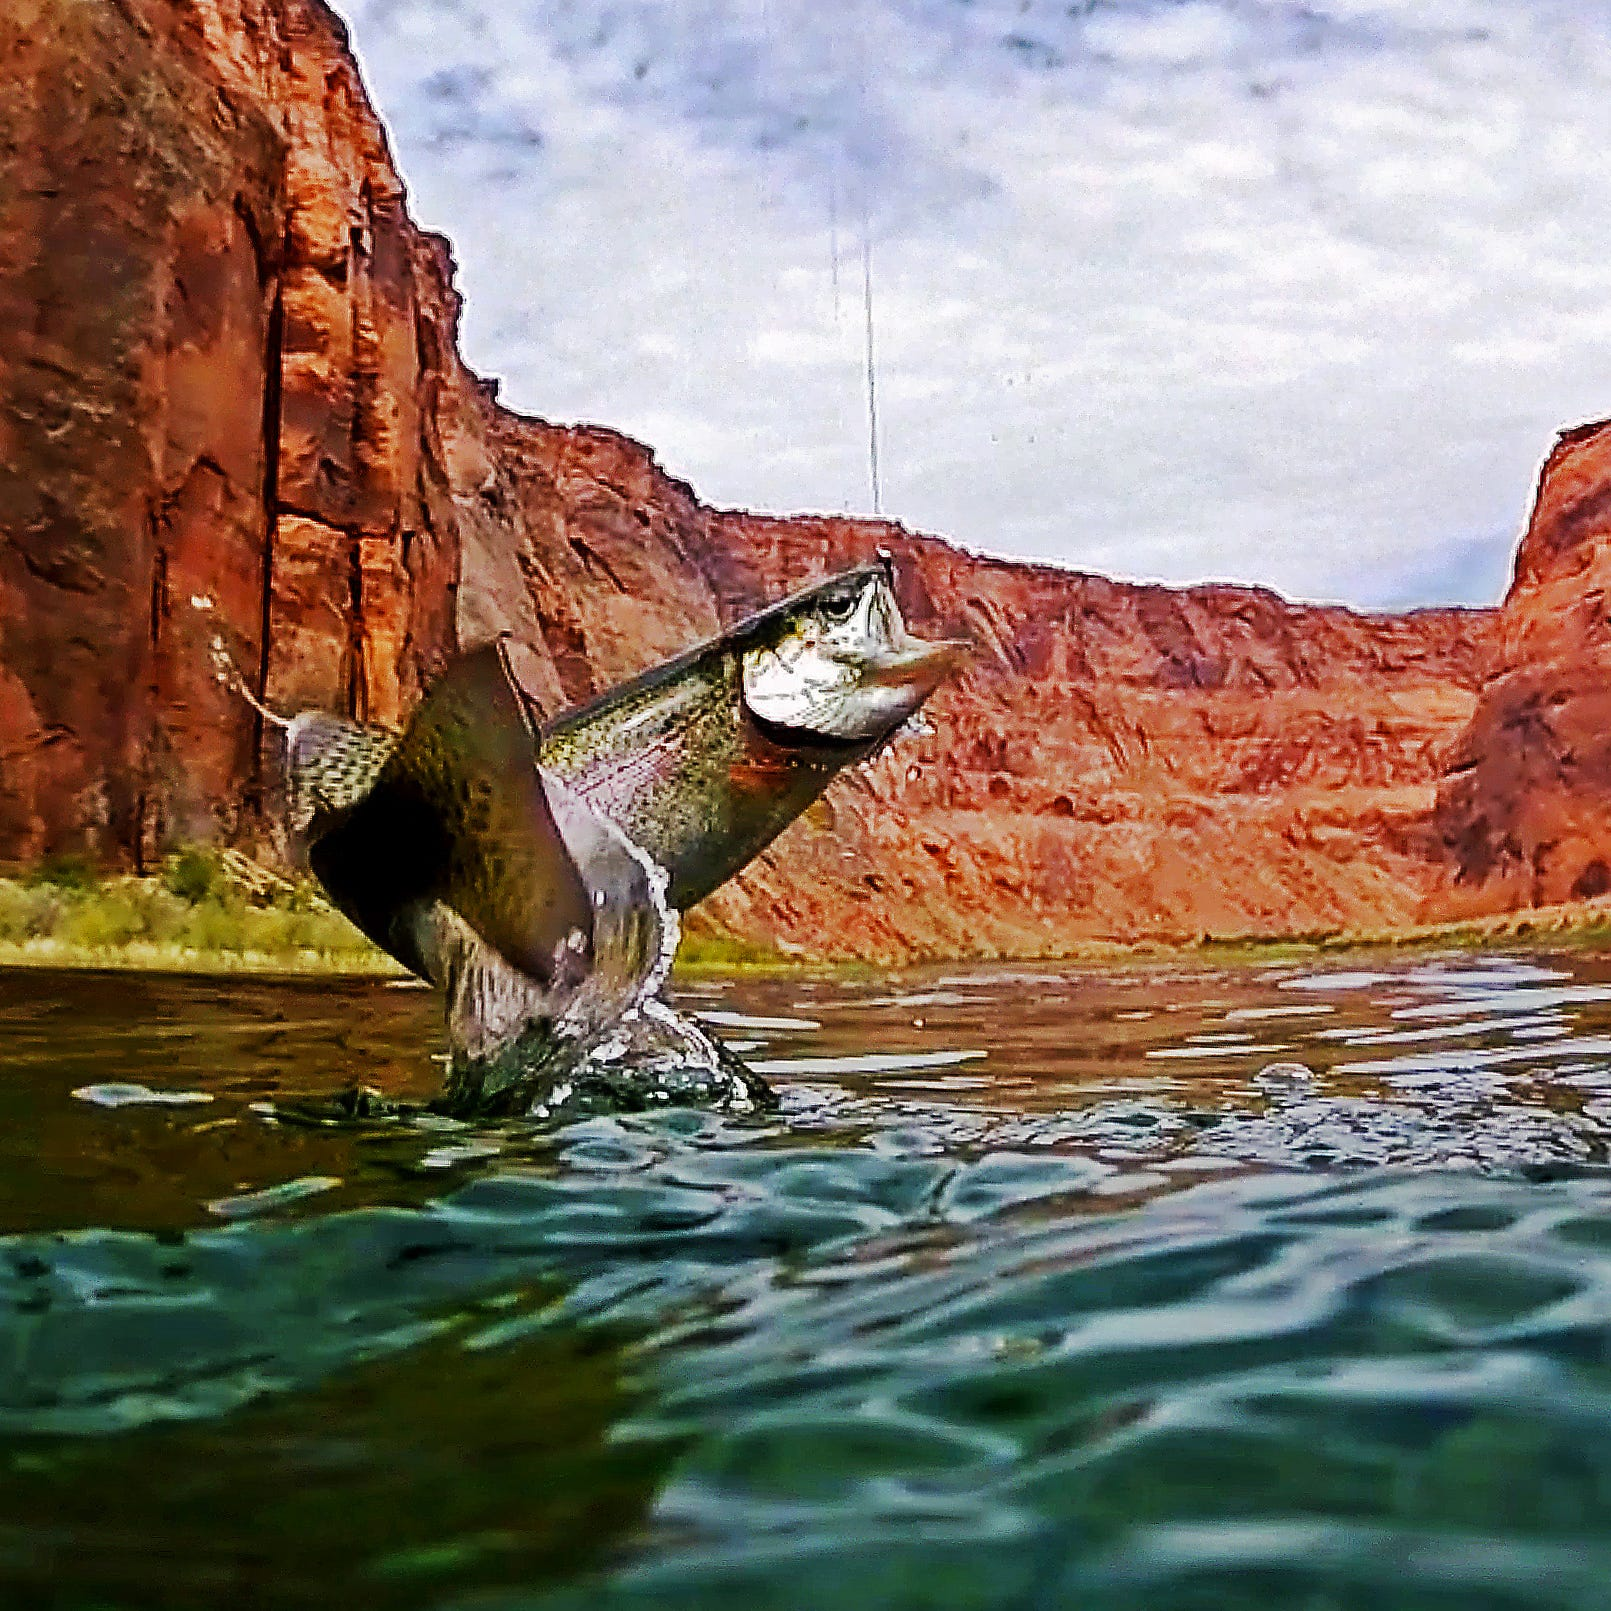 A rainbow trout is hooked by a fly fisherman on the Colorado River near Marble Canyon. The non-native fish were introduced into Grand Canyon waters for recreational anglers and have been known to dine on the river's endangered humpback chub.